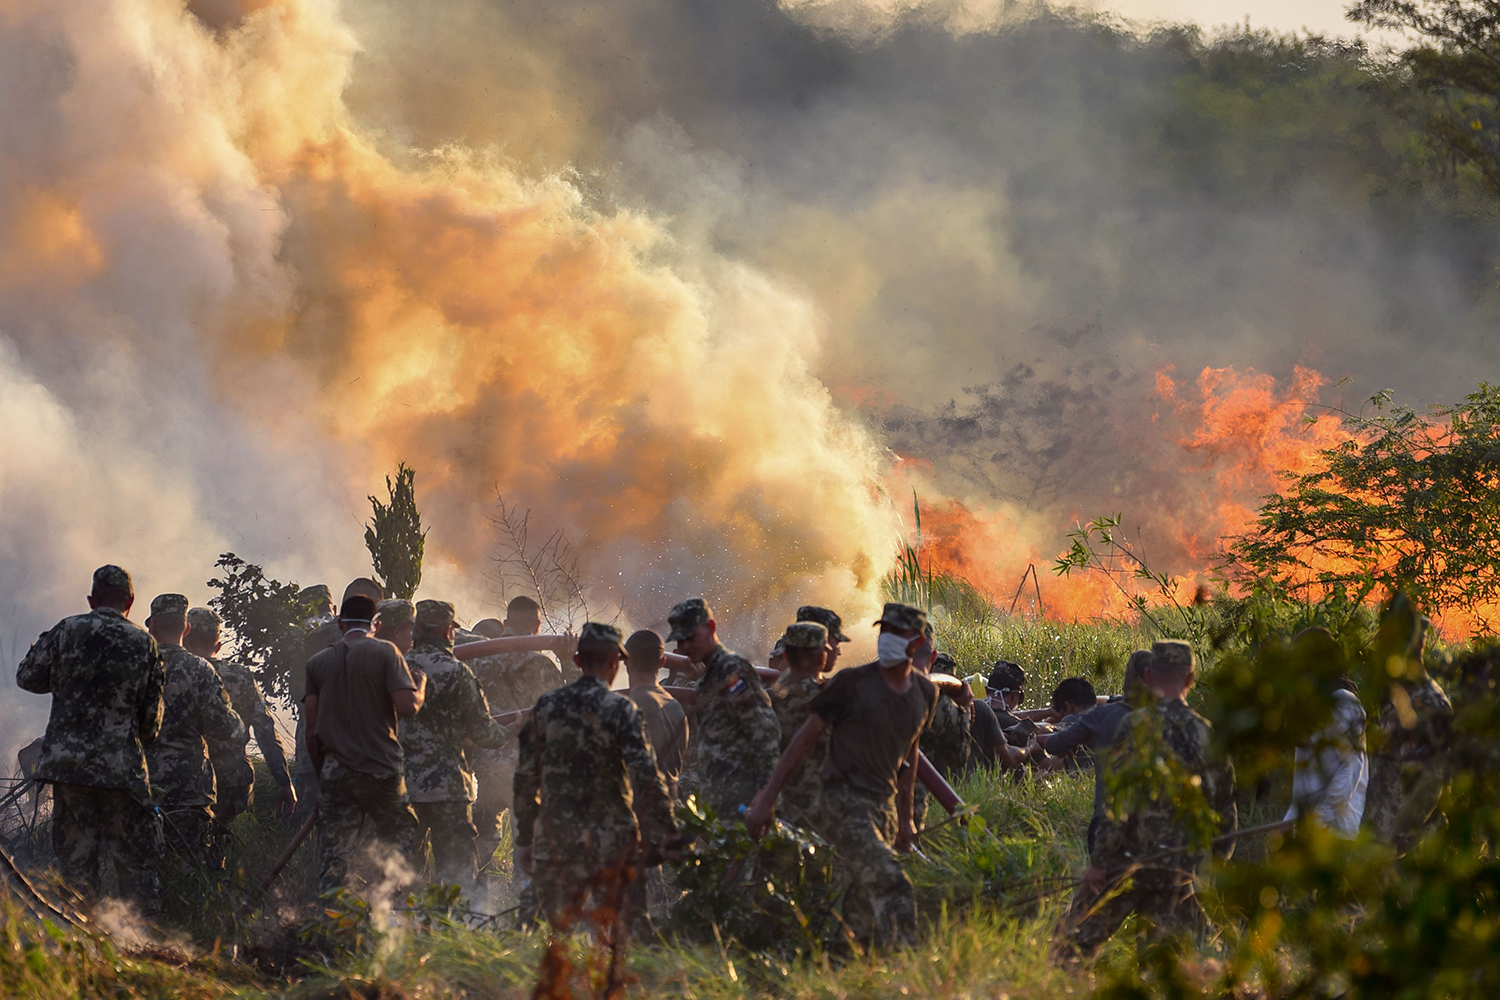 Paraguayan firefighters and soldiers try to extinguish a fire at the Guasu Metropolitan Park in Luque, Paraguay, on Oct. 1. NORBERTO DUARTE/AFP via Getty Images